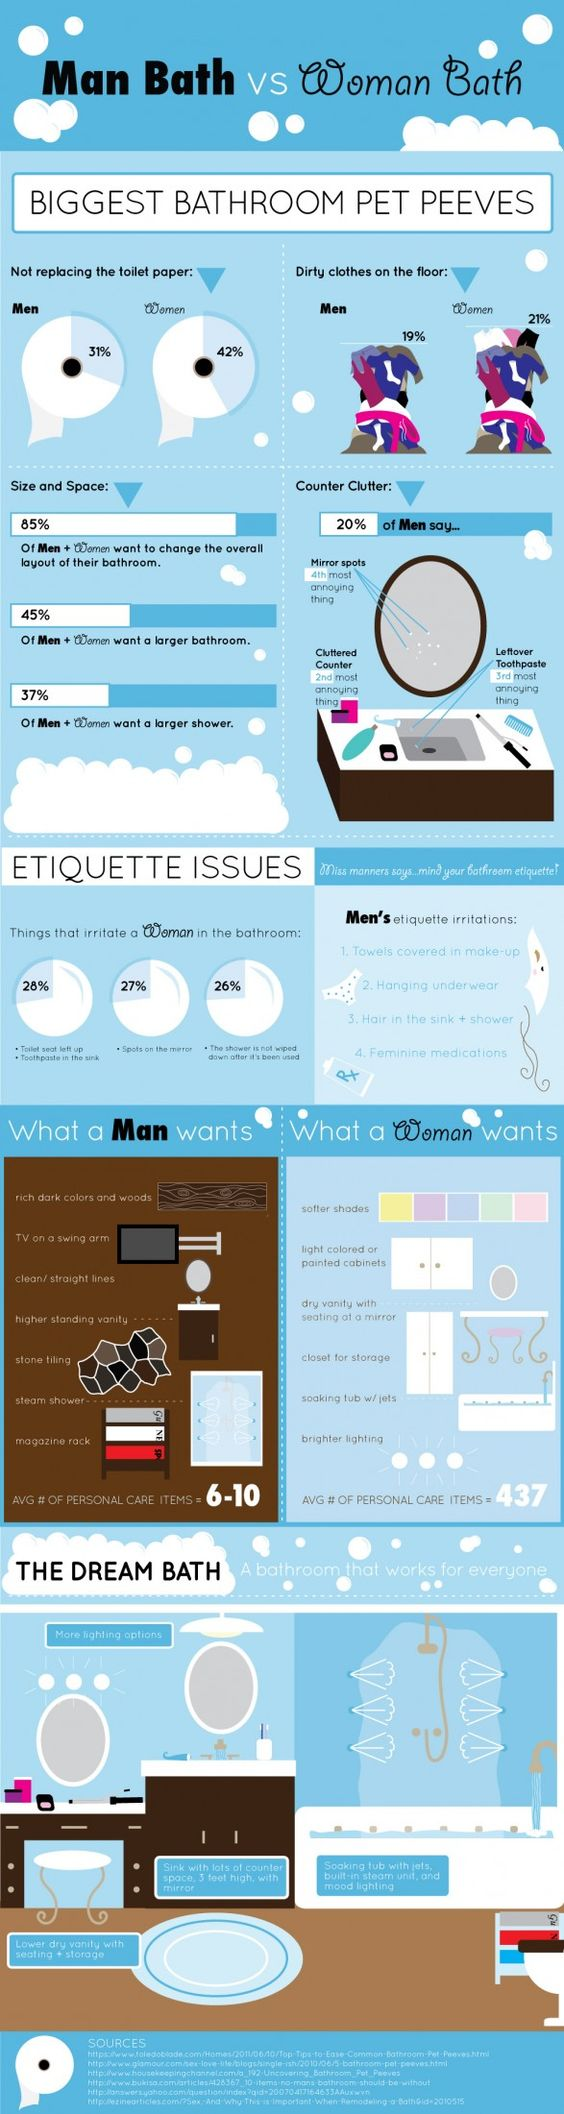 The Man Bath versus The Woman Bath